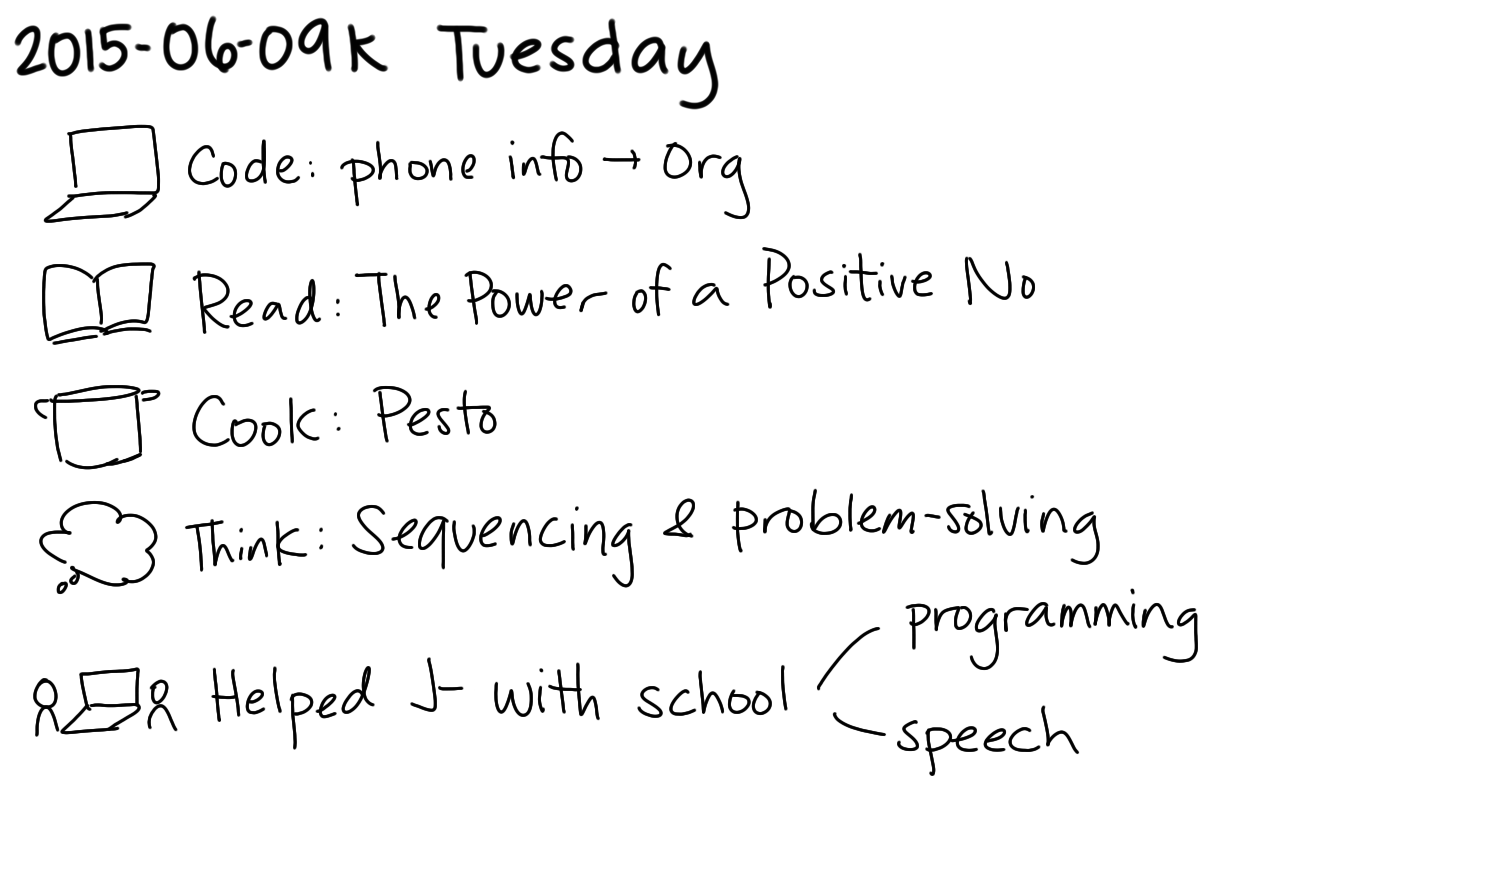 2015-06-09k Tuesday -- index card #journal.png